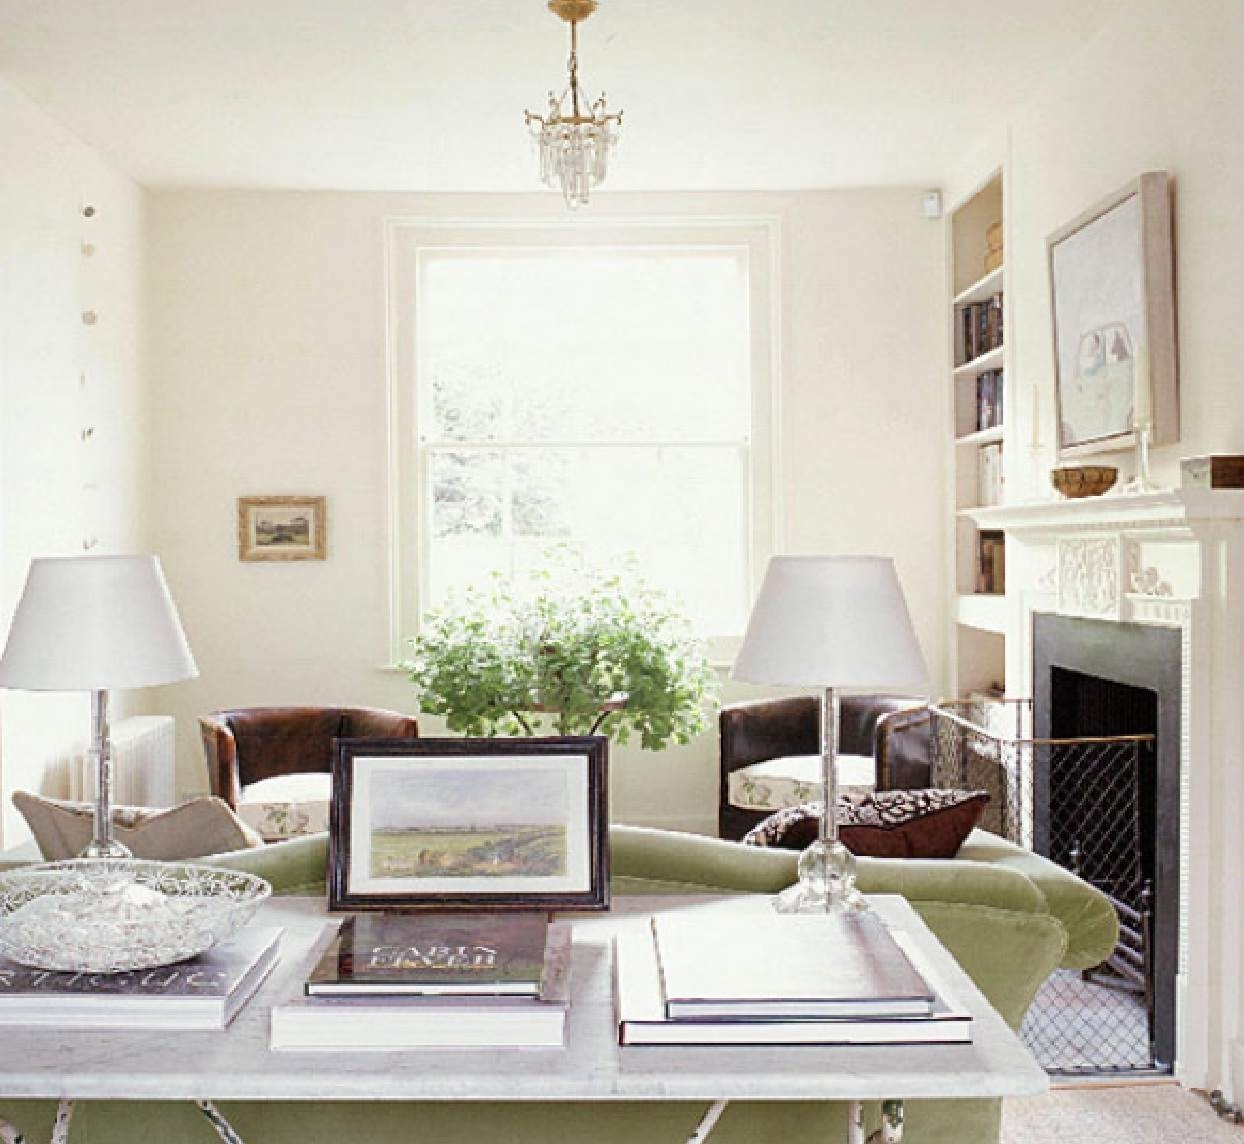 Inspiration about The Necessity Of Table Lamps For Living Room – Blogbeen Throughout Living Room Table Lights (#1 of 15)